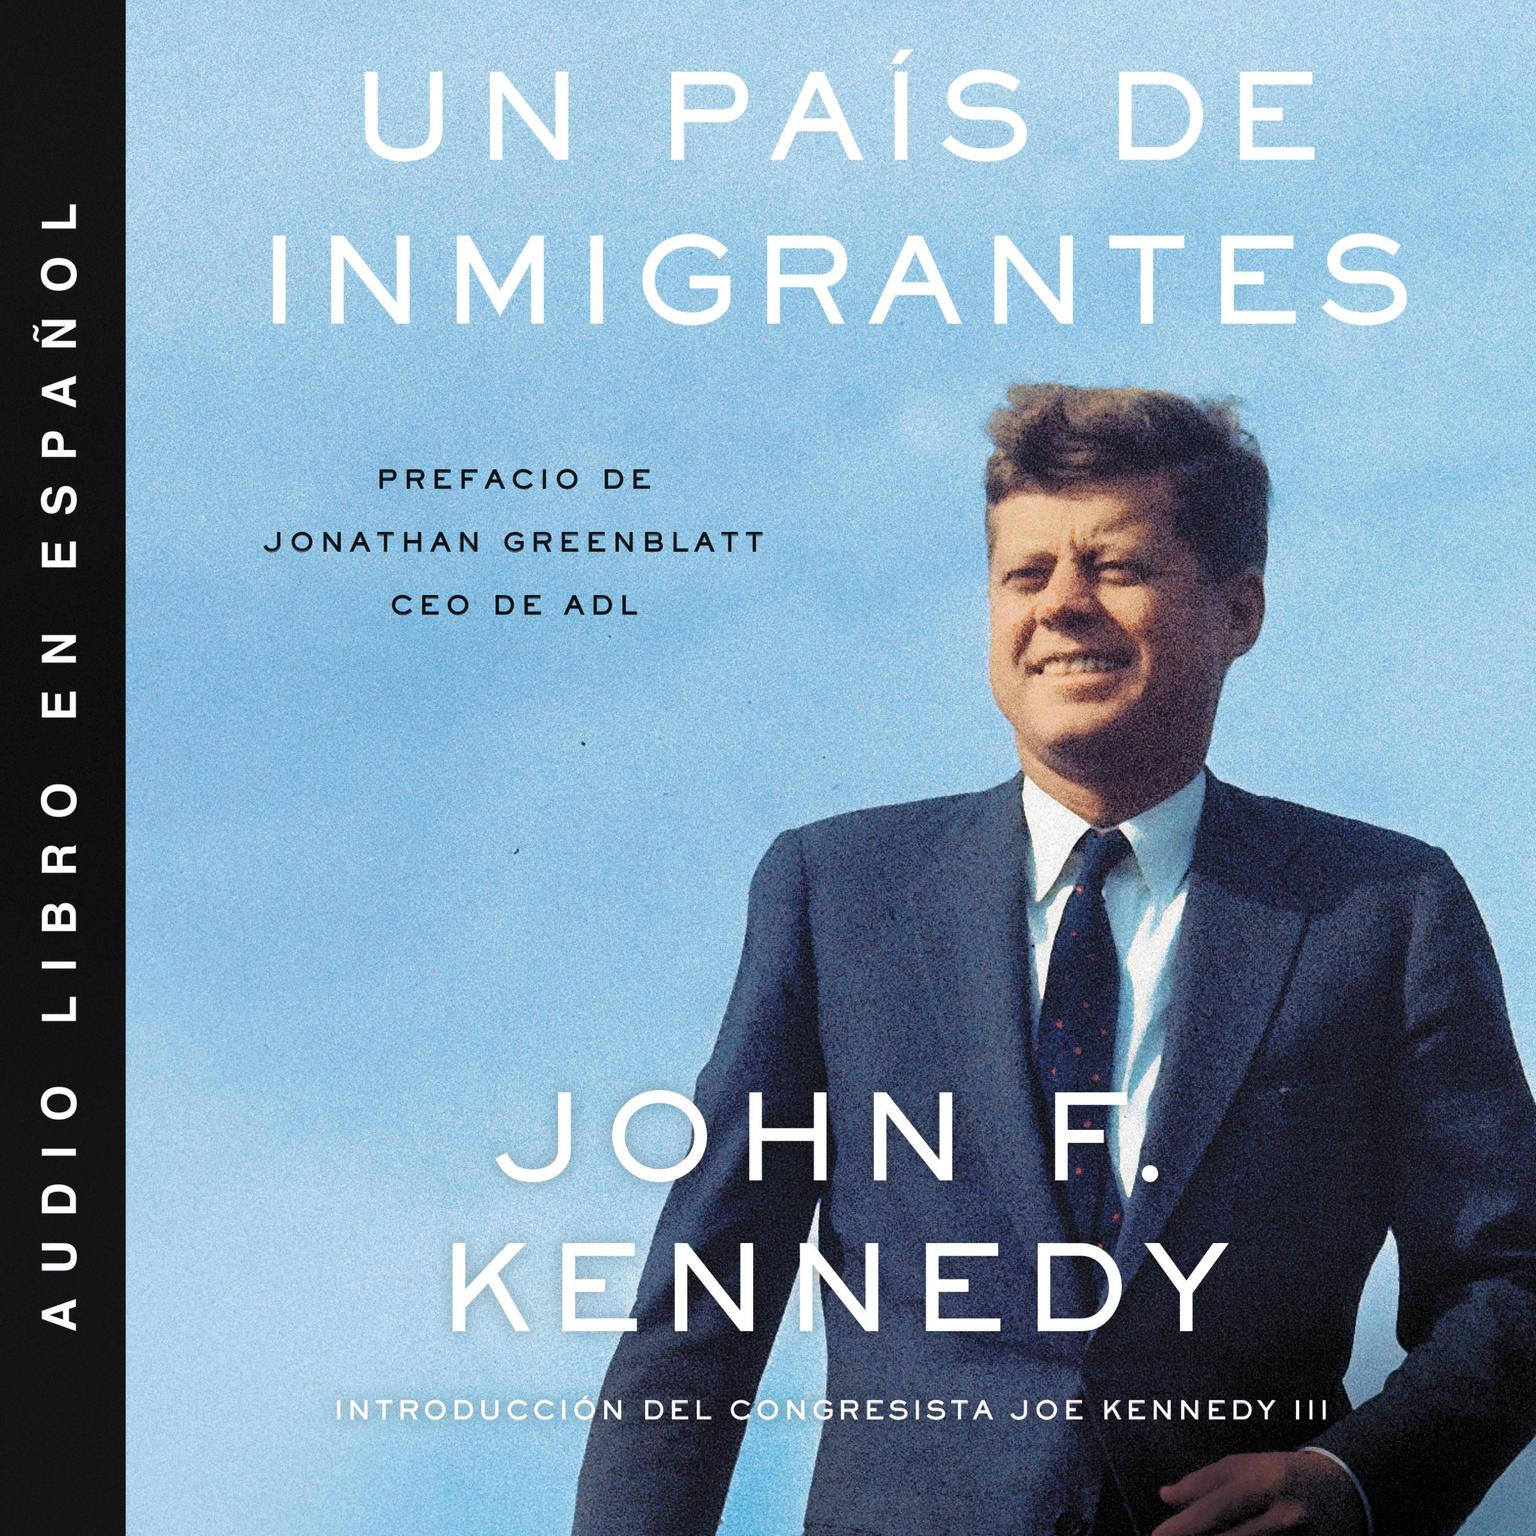 Printable Nation of Immigrants, A  país de inmigrantes, Un (Spanish ed): Spanish Edition Audiobook Cover Art